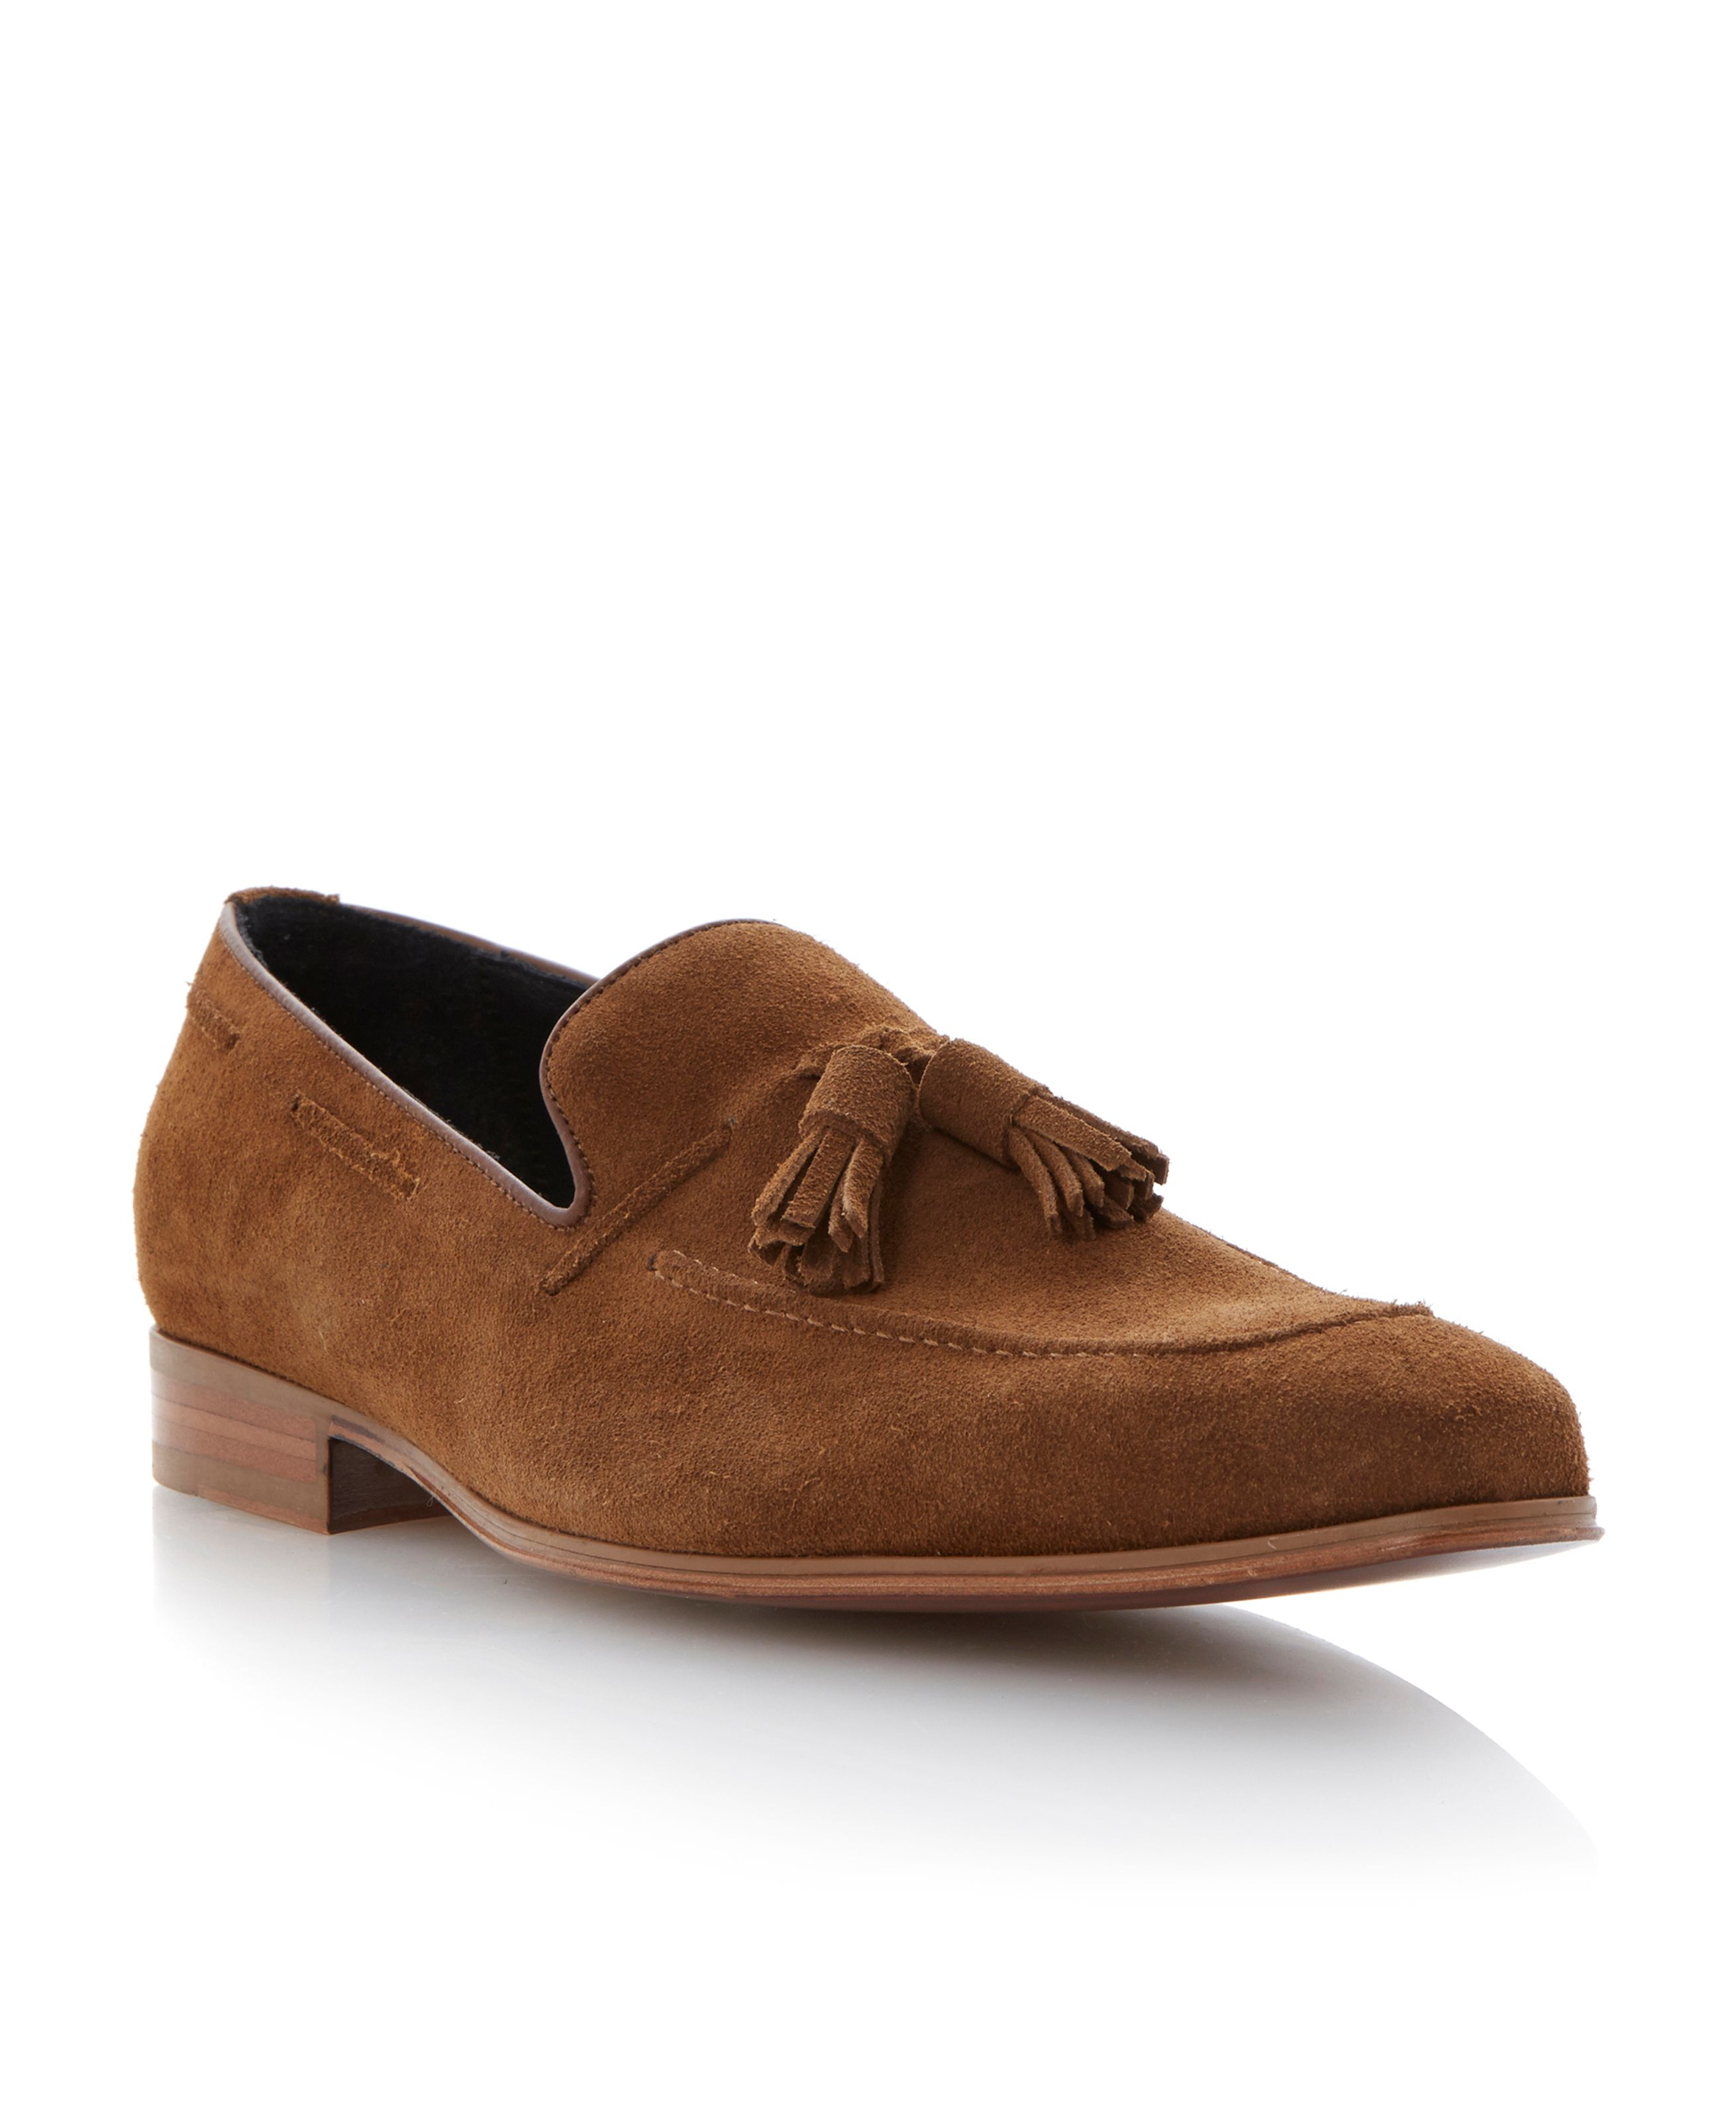 Dune Black Leather Rupert Apron Detail Tassel Loafers in Tan (Brown) for Men